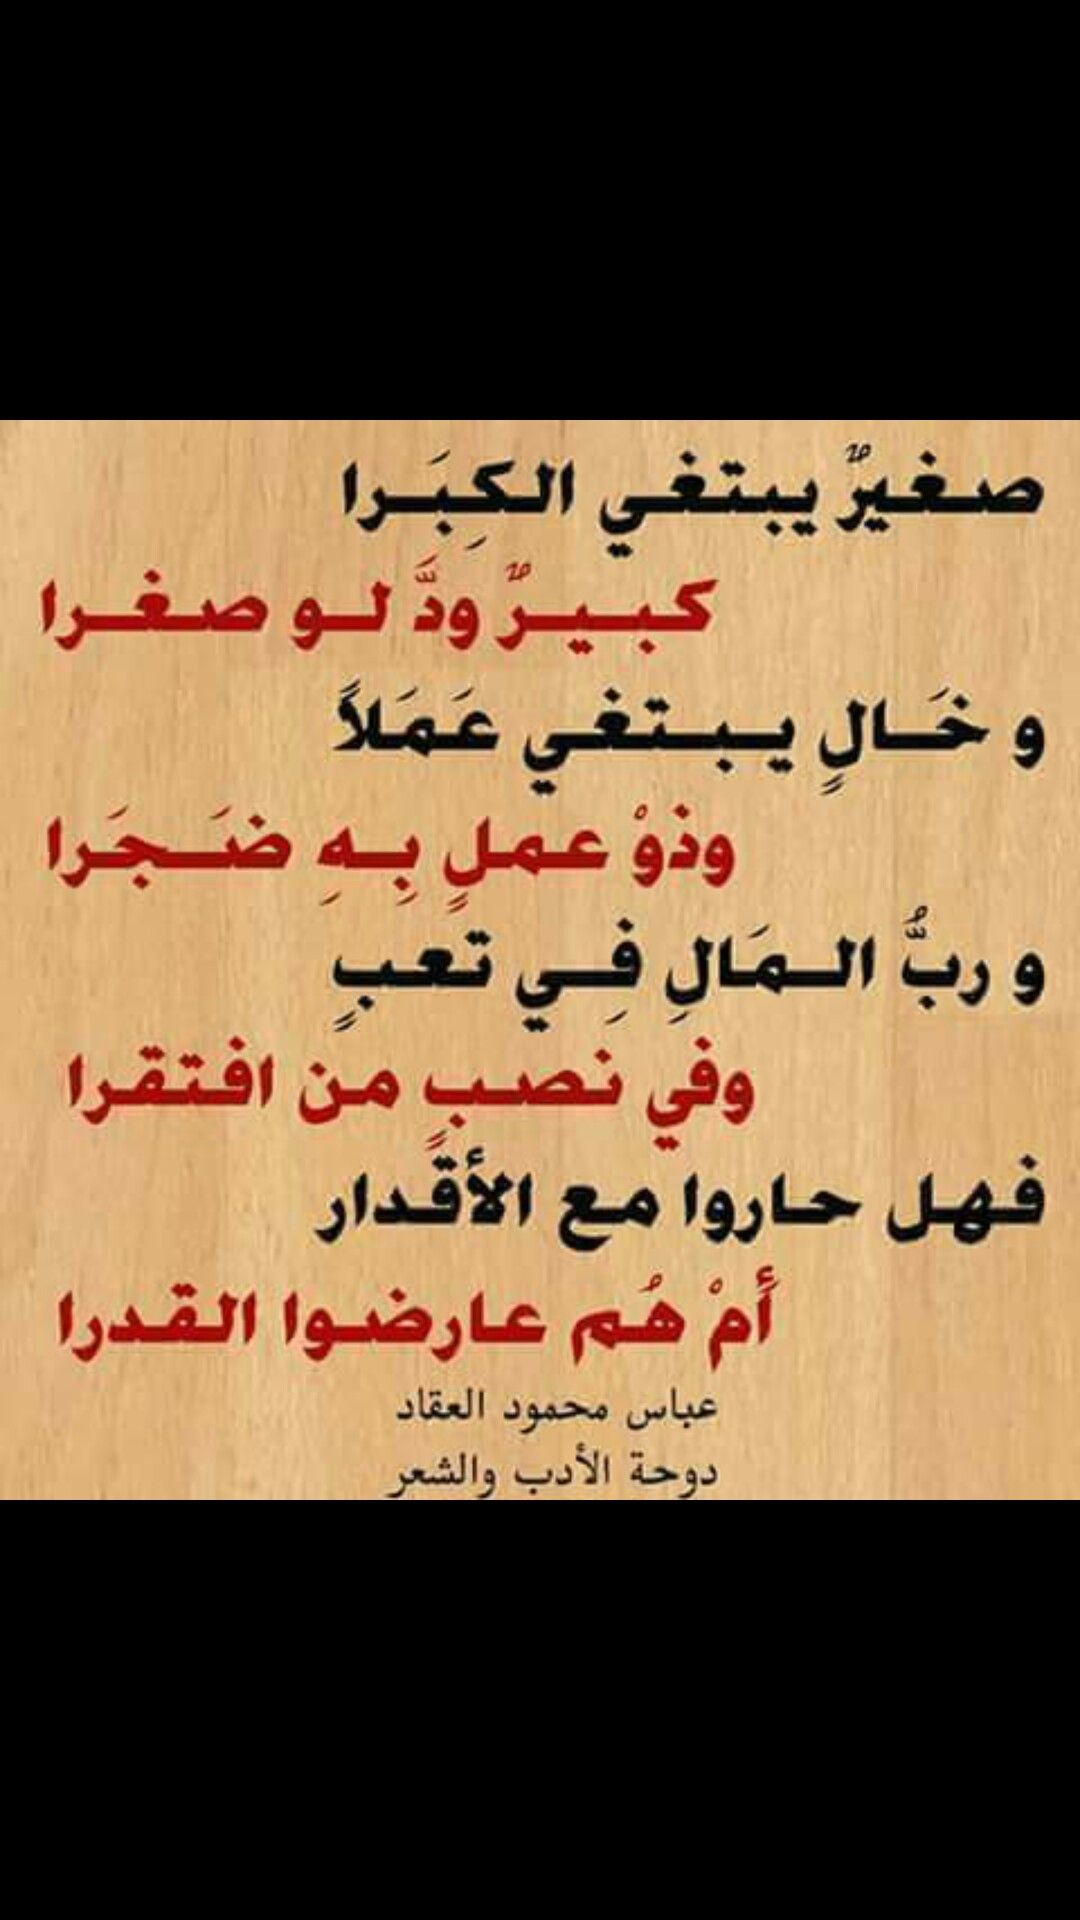 Pin By Mustafa On كلمات Words Quotes Words Arabic Typing